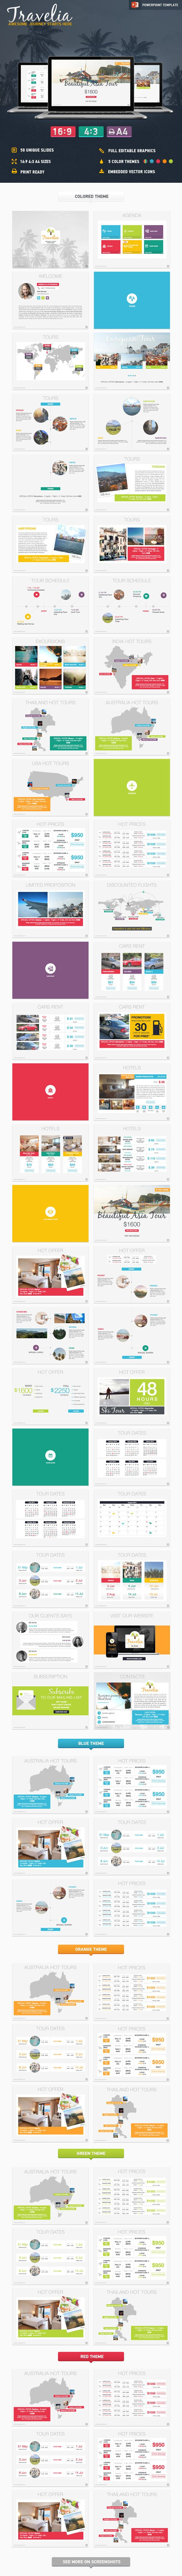 Travelia PowerPoint Presentation Template (PowerPoint Templates)